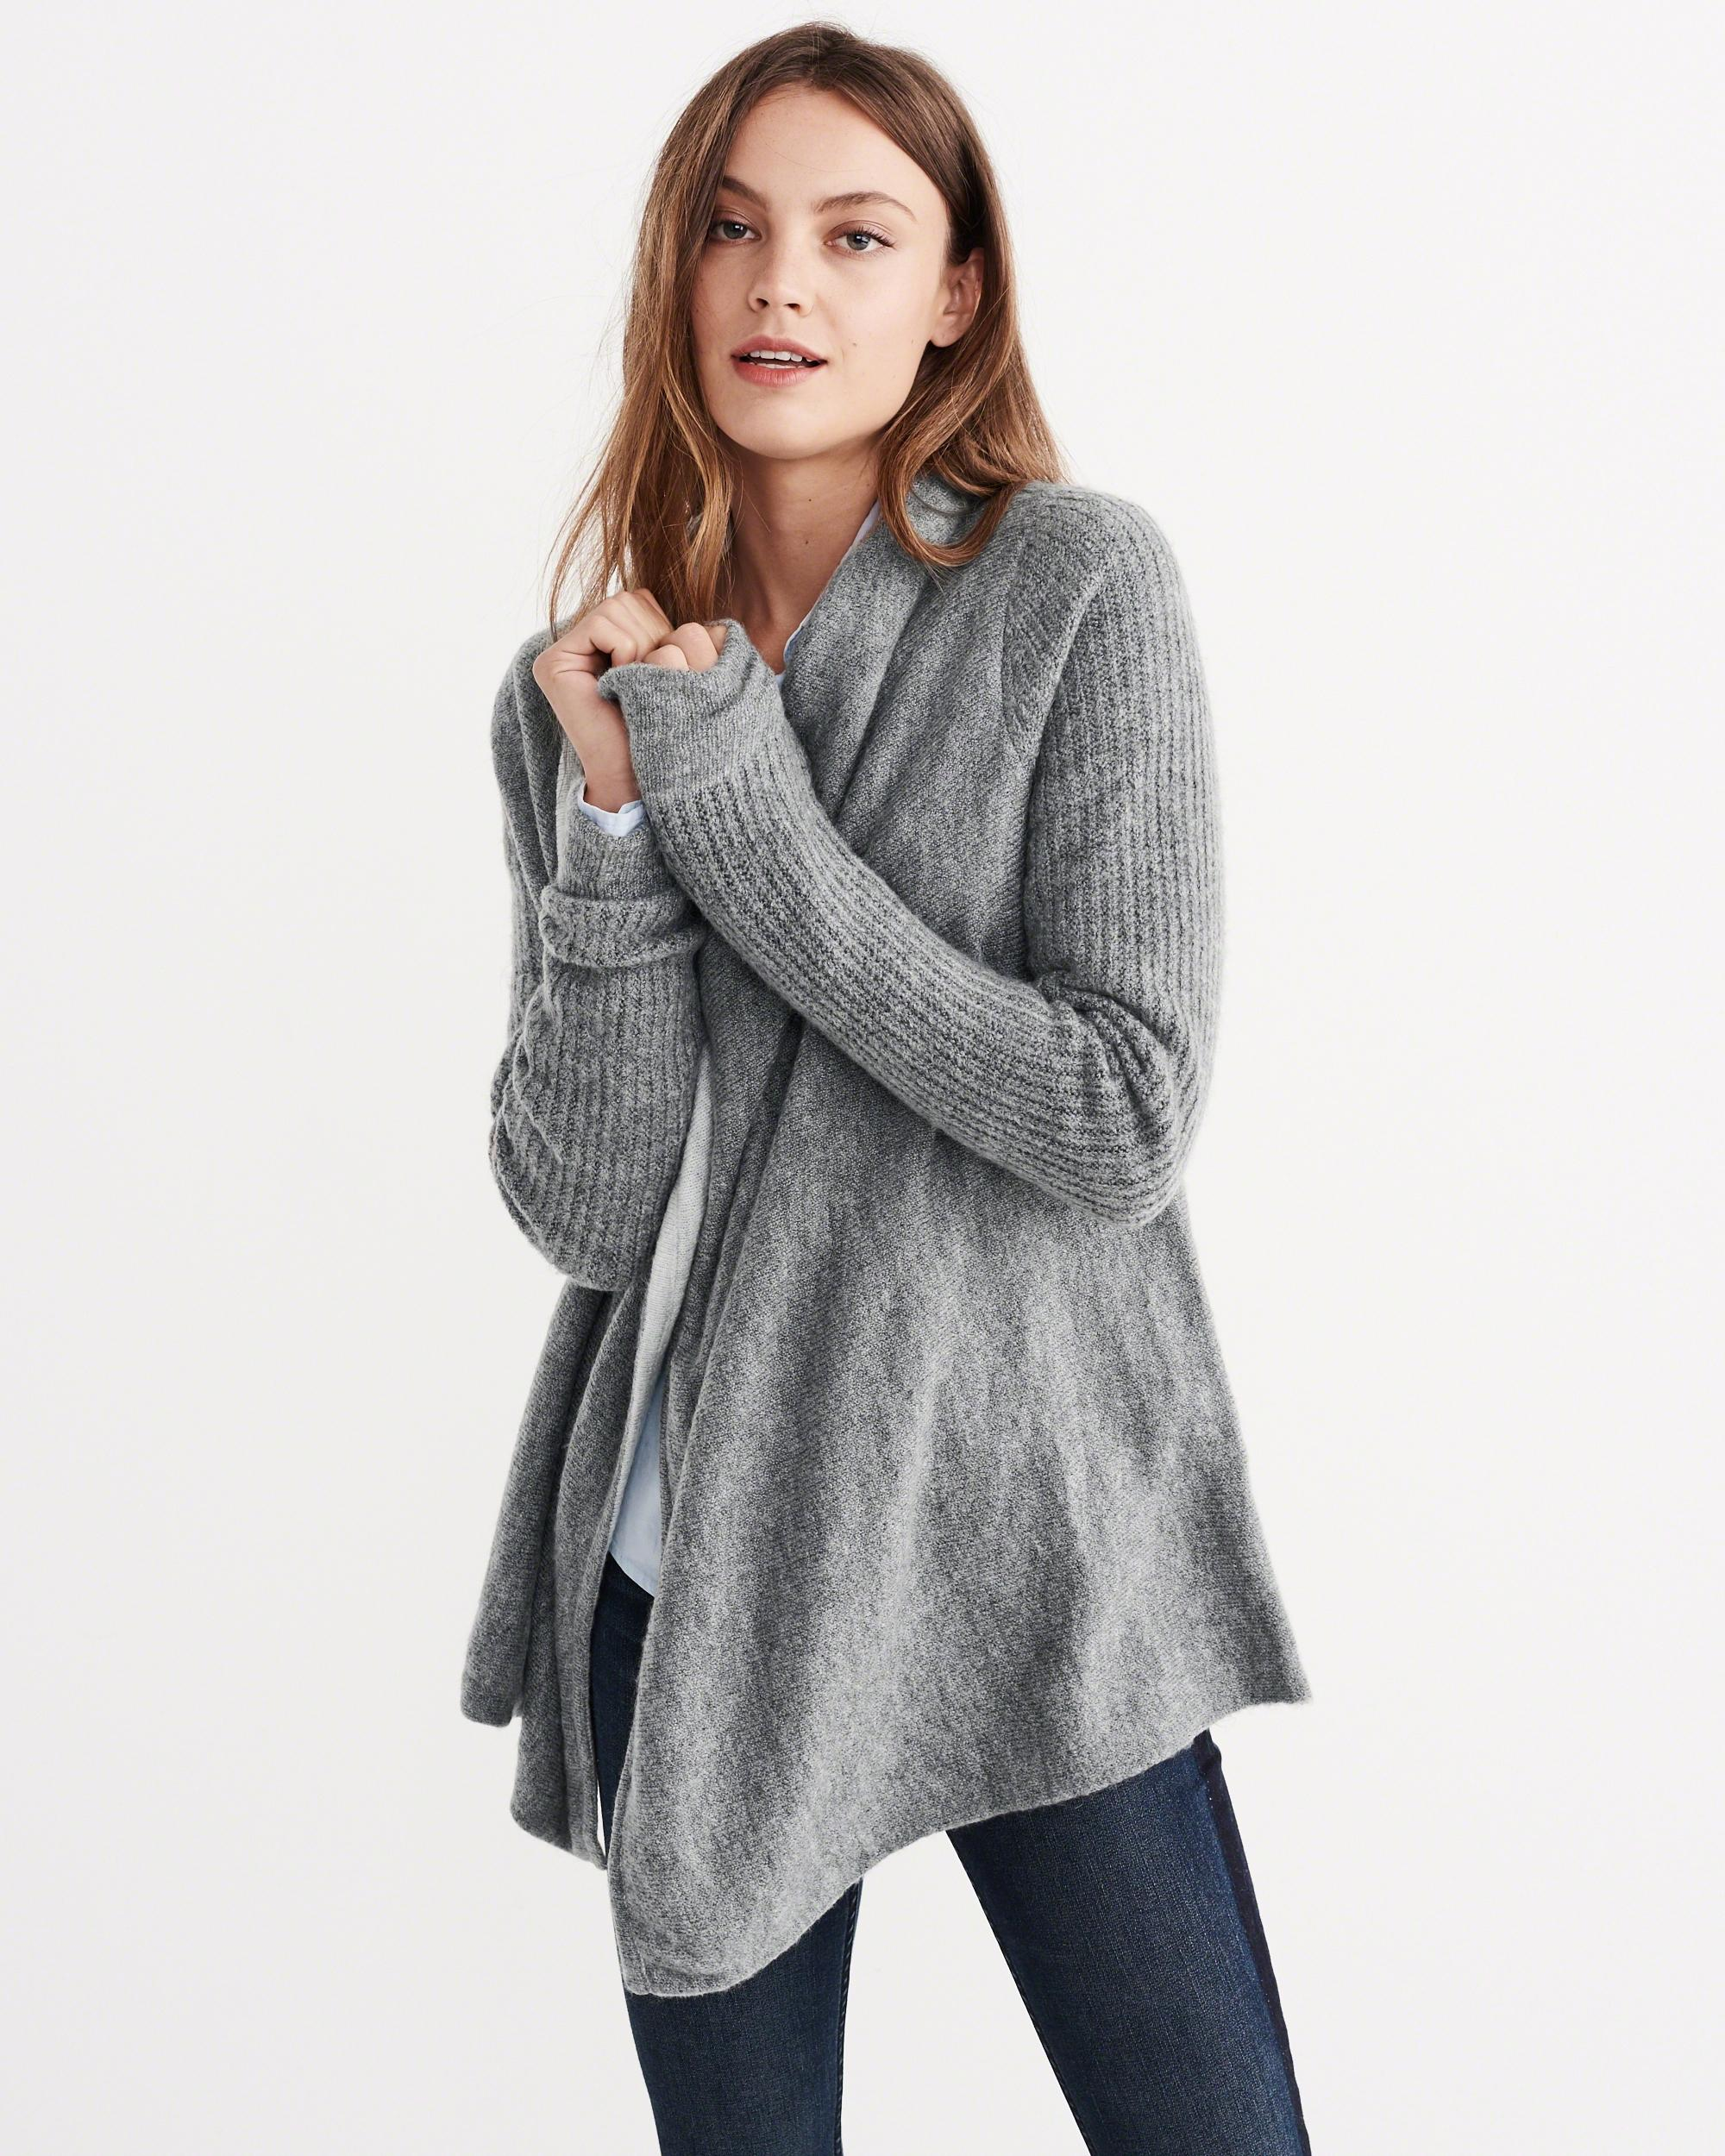 Abercrombie & fitch Stitch Mix Blanket Cardigan in Gray | Lyst